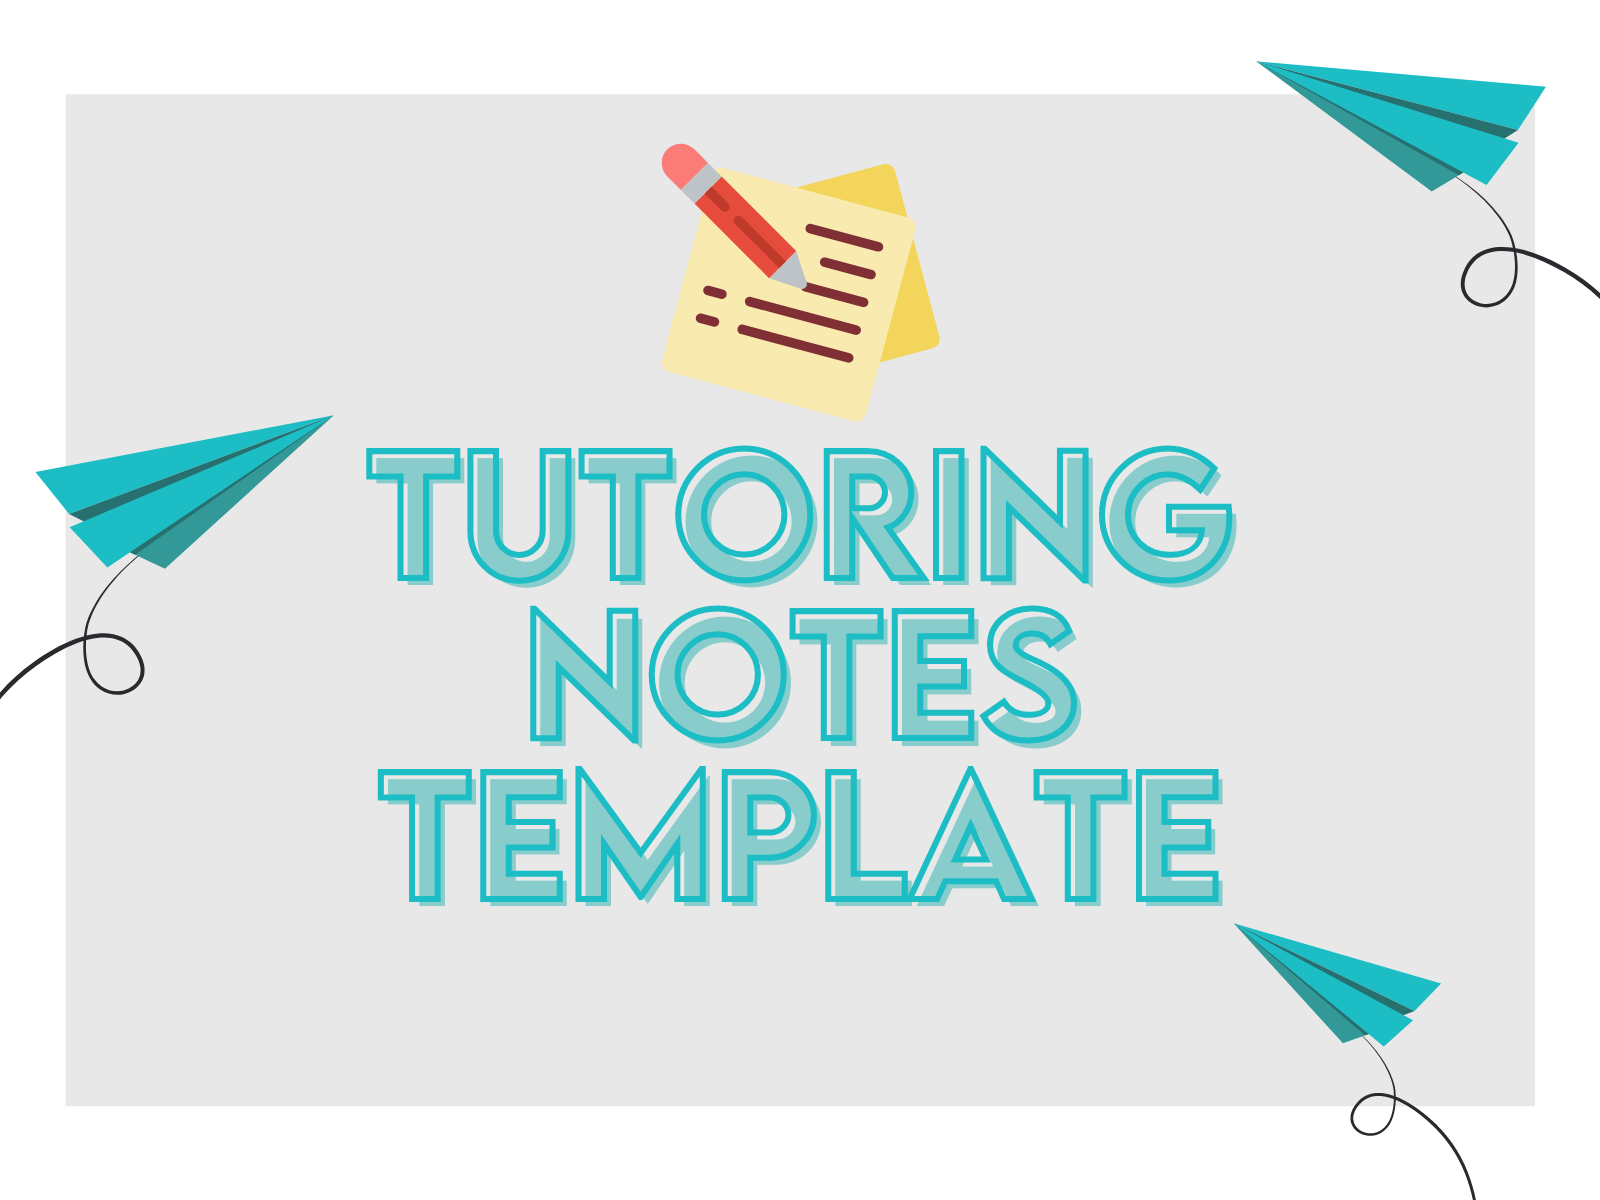 Tutoring notes template to track client tutoring sessions.